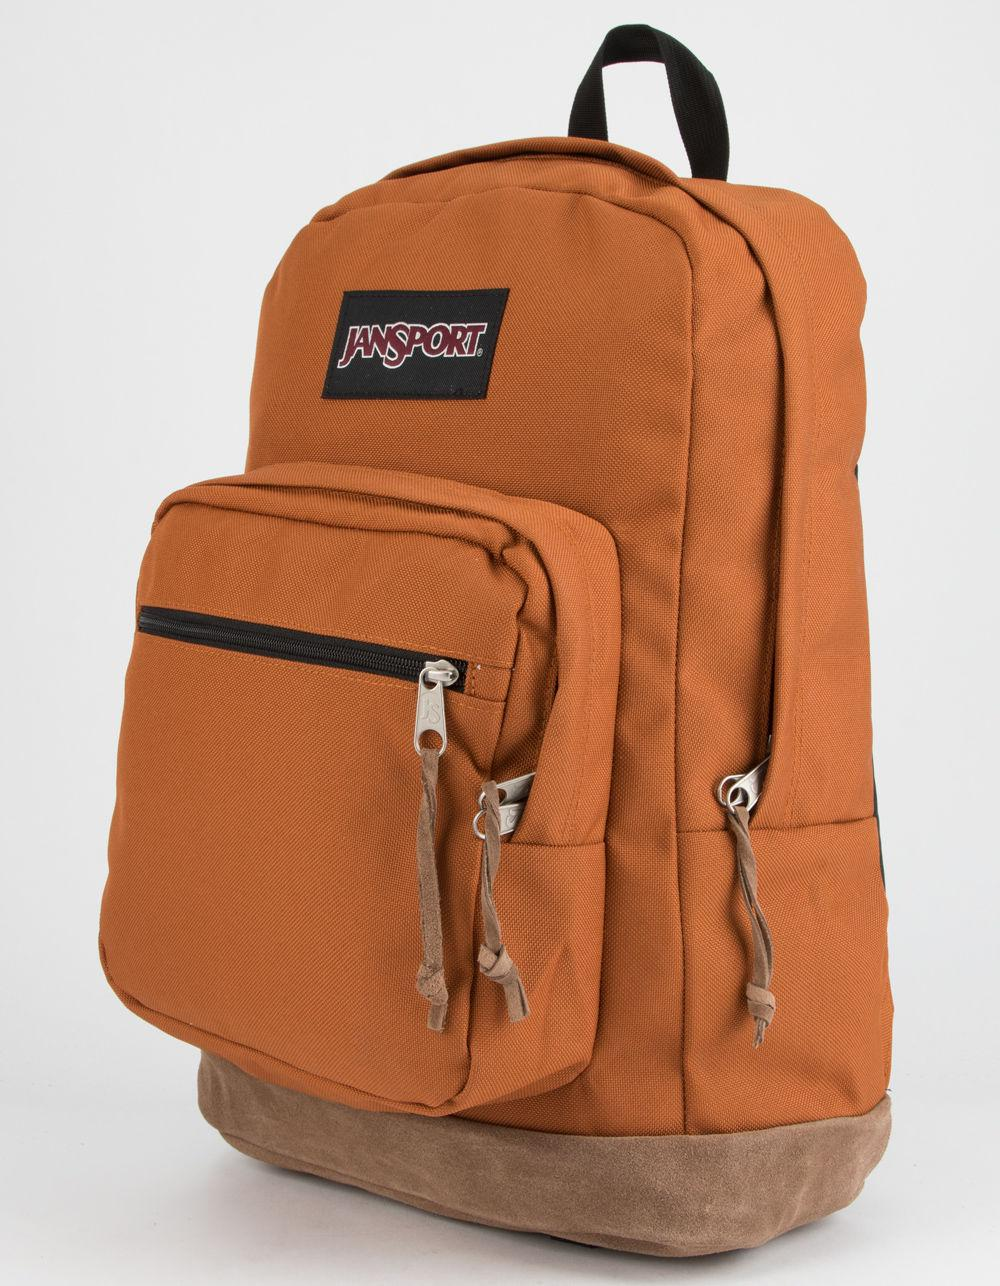 Lyst - Jansport Right Pack Brown Canyon Backpack in Brown for Men e89aac5b7d900